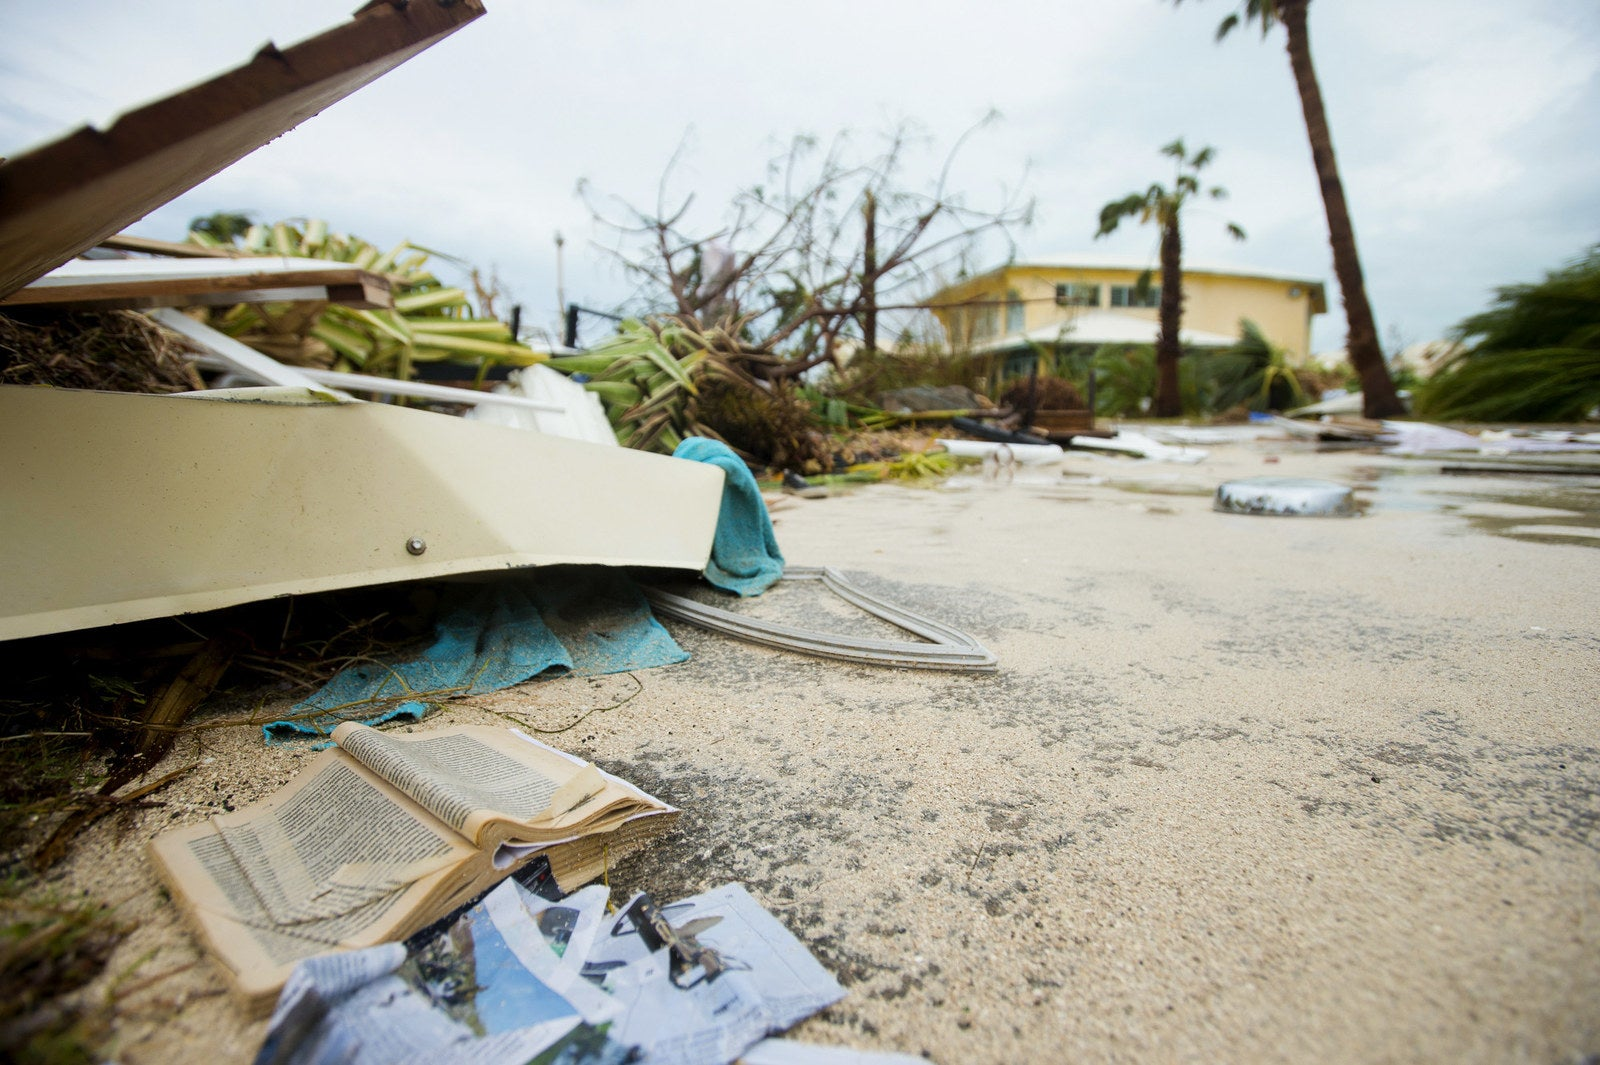 Damaged books and debris is sprawled throughout the streets of Marigot, Saint Martin.